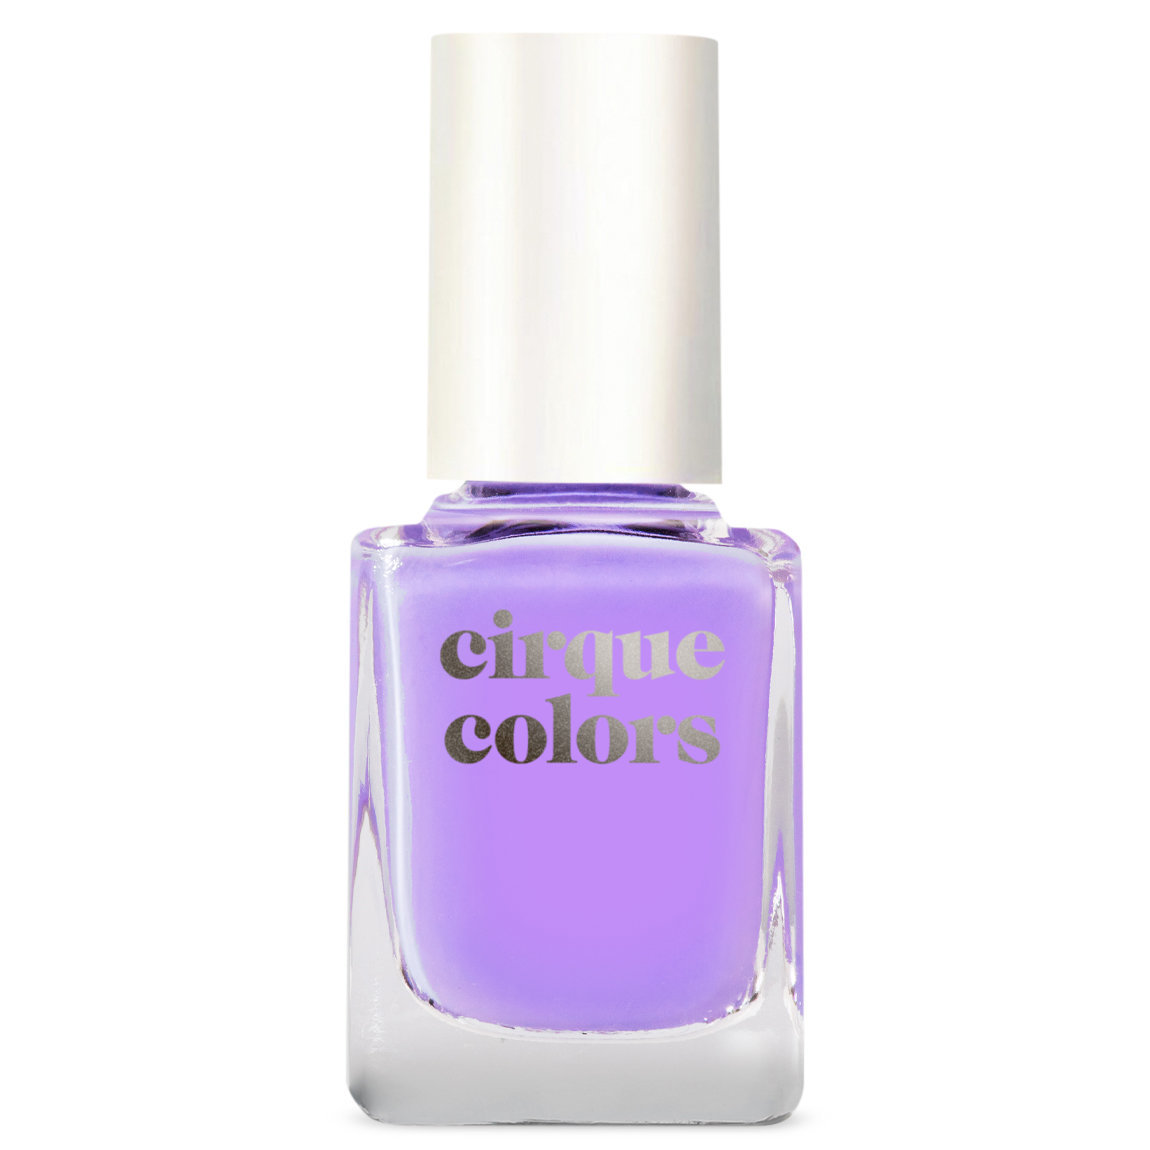 Cirque Colors Creme Nail Polish Narcisse alternative view 1 - product swatch.